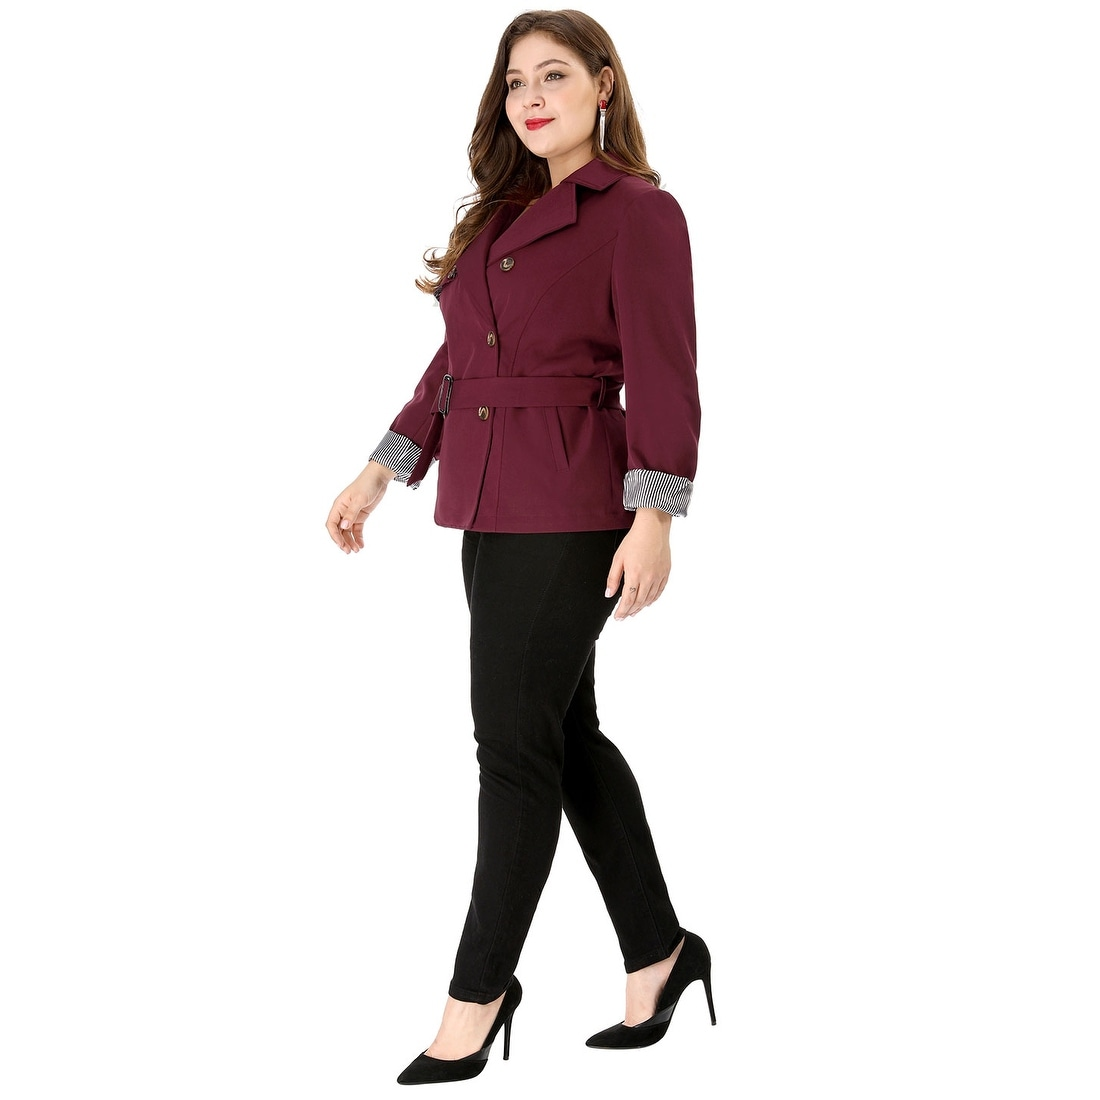 cd073aef82a Shop Women s Plus Size Lapel Blazer Double-Breasted Belted Trench Coat -  Red - Free Shipping On Orders Over  45 - Overstock - 25768932